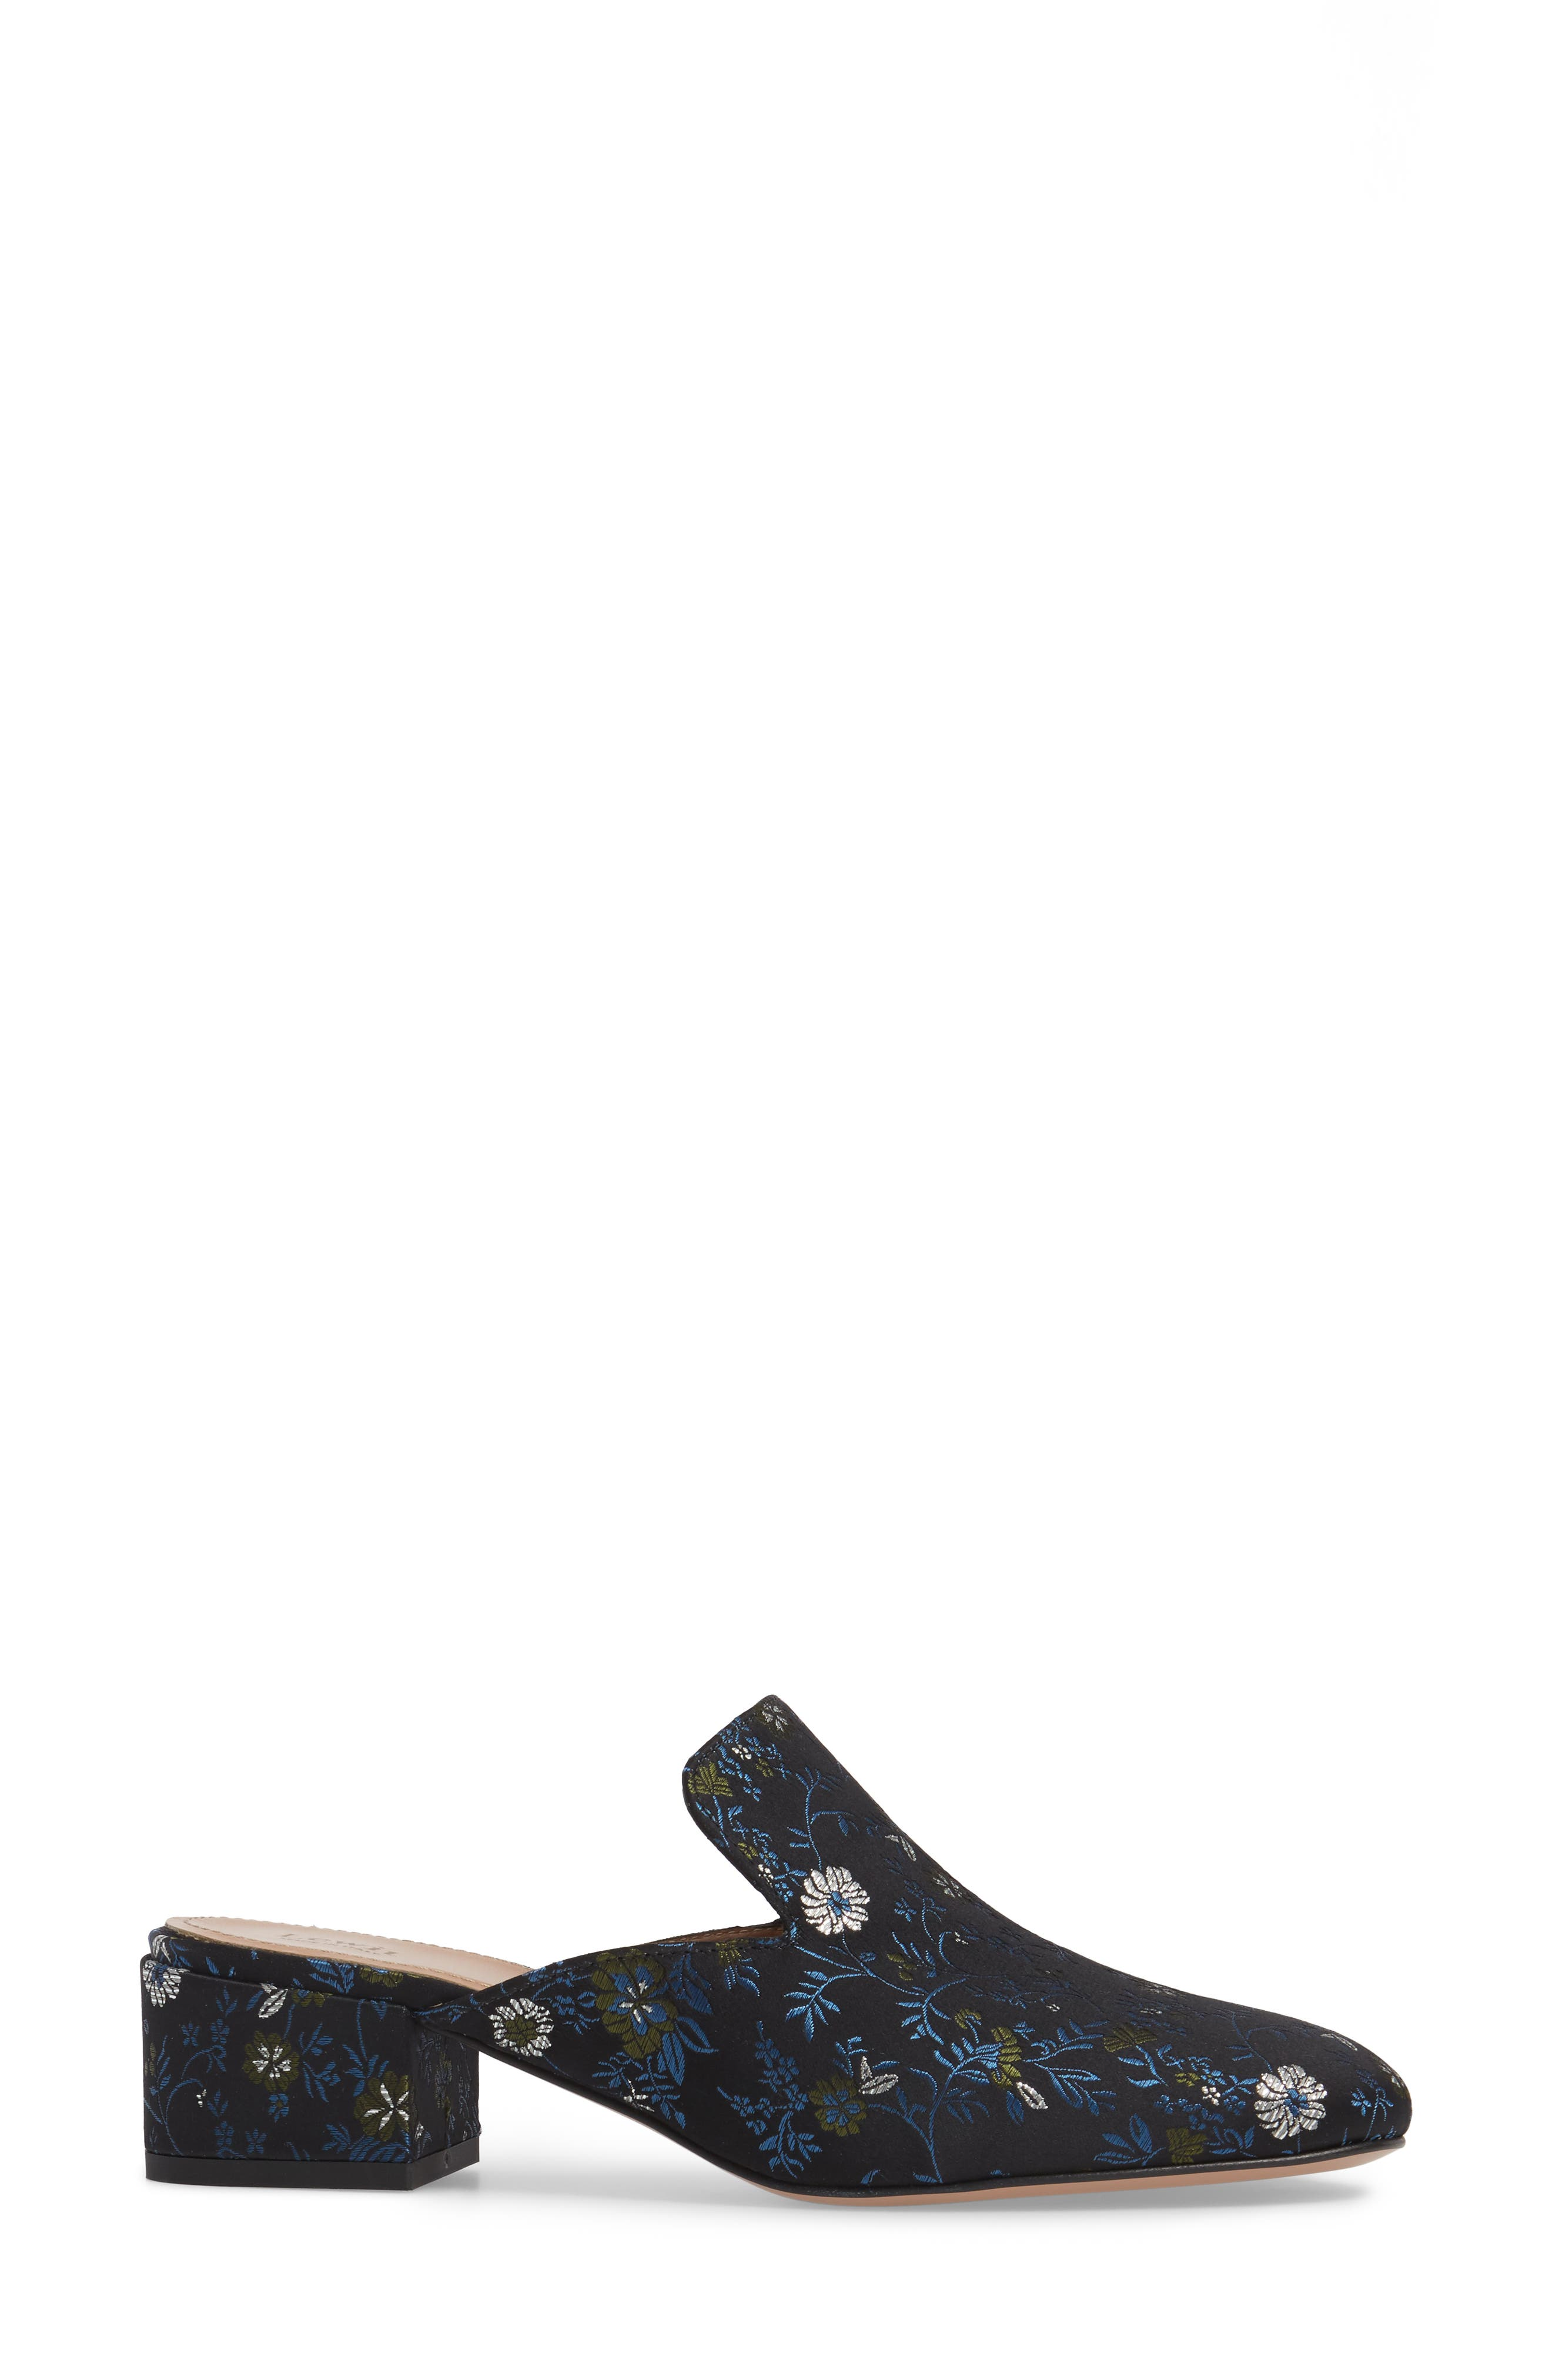 Bianca Embroidered Loafer Mule,                             Alternate thumbnail 3, color,                             Black/ Blue Floral Fabric